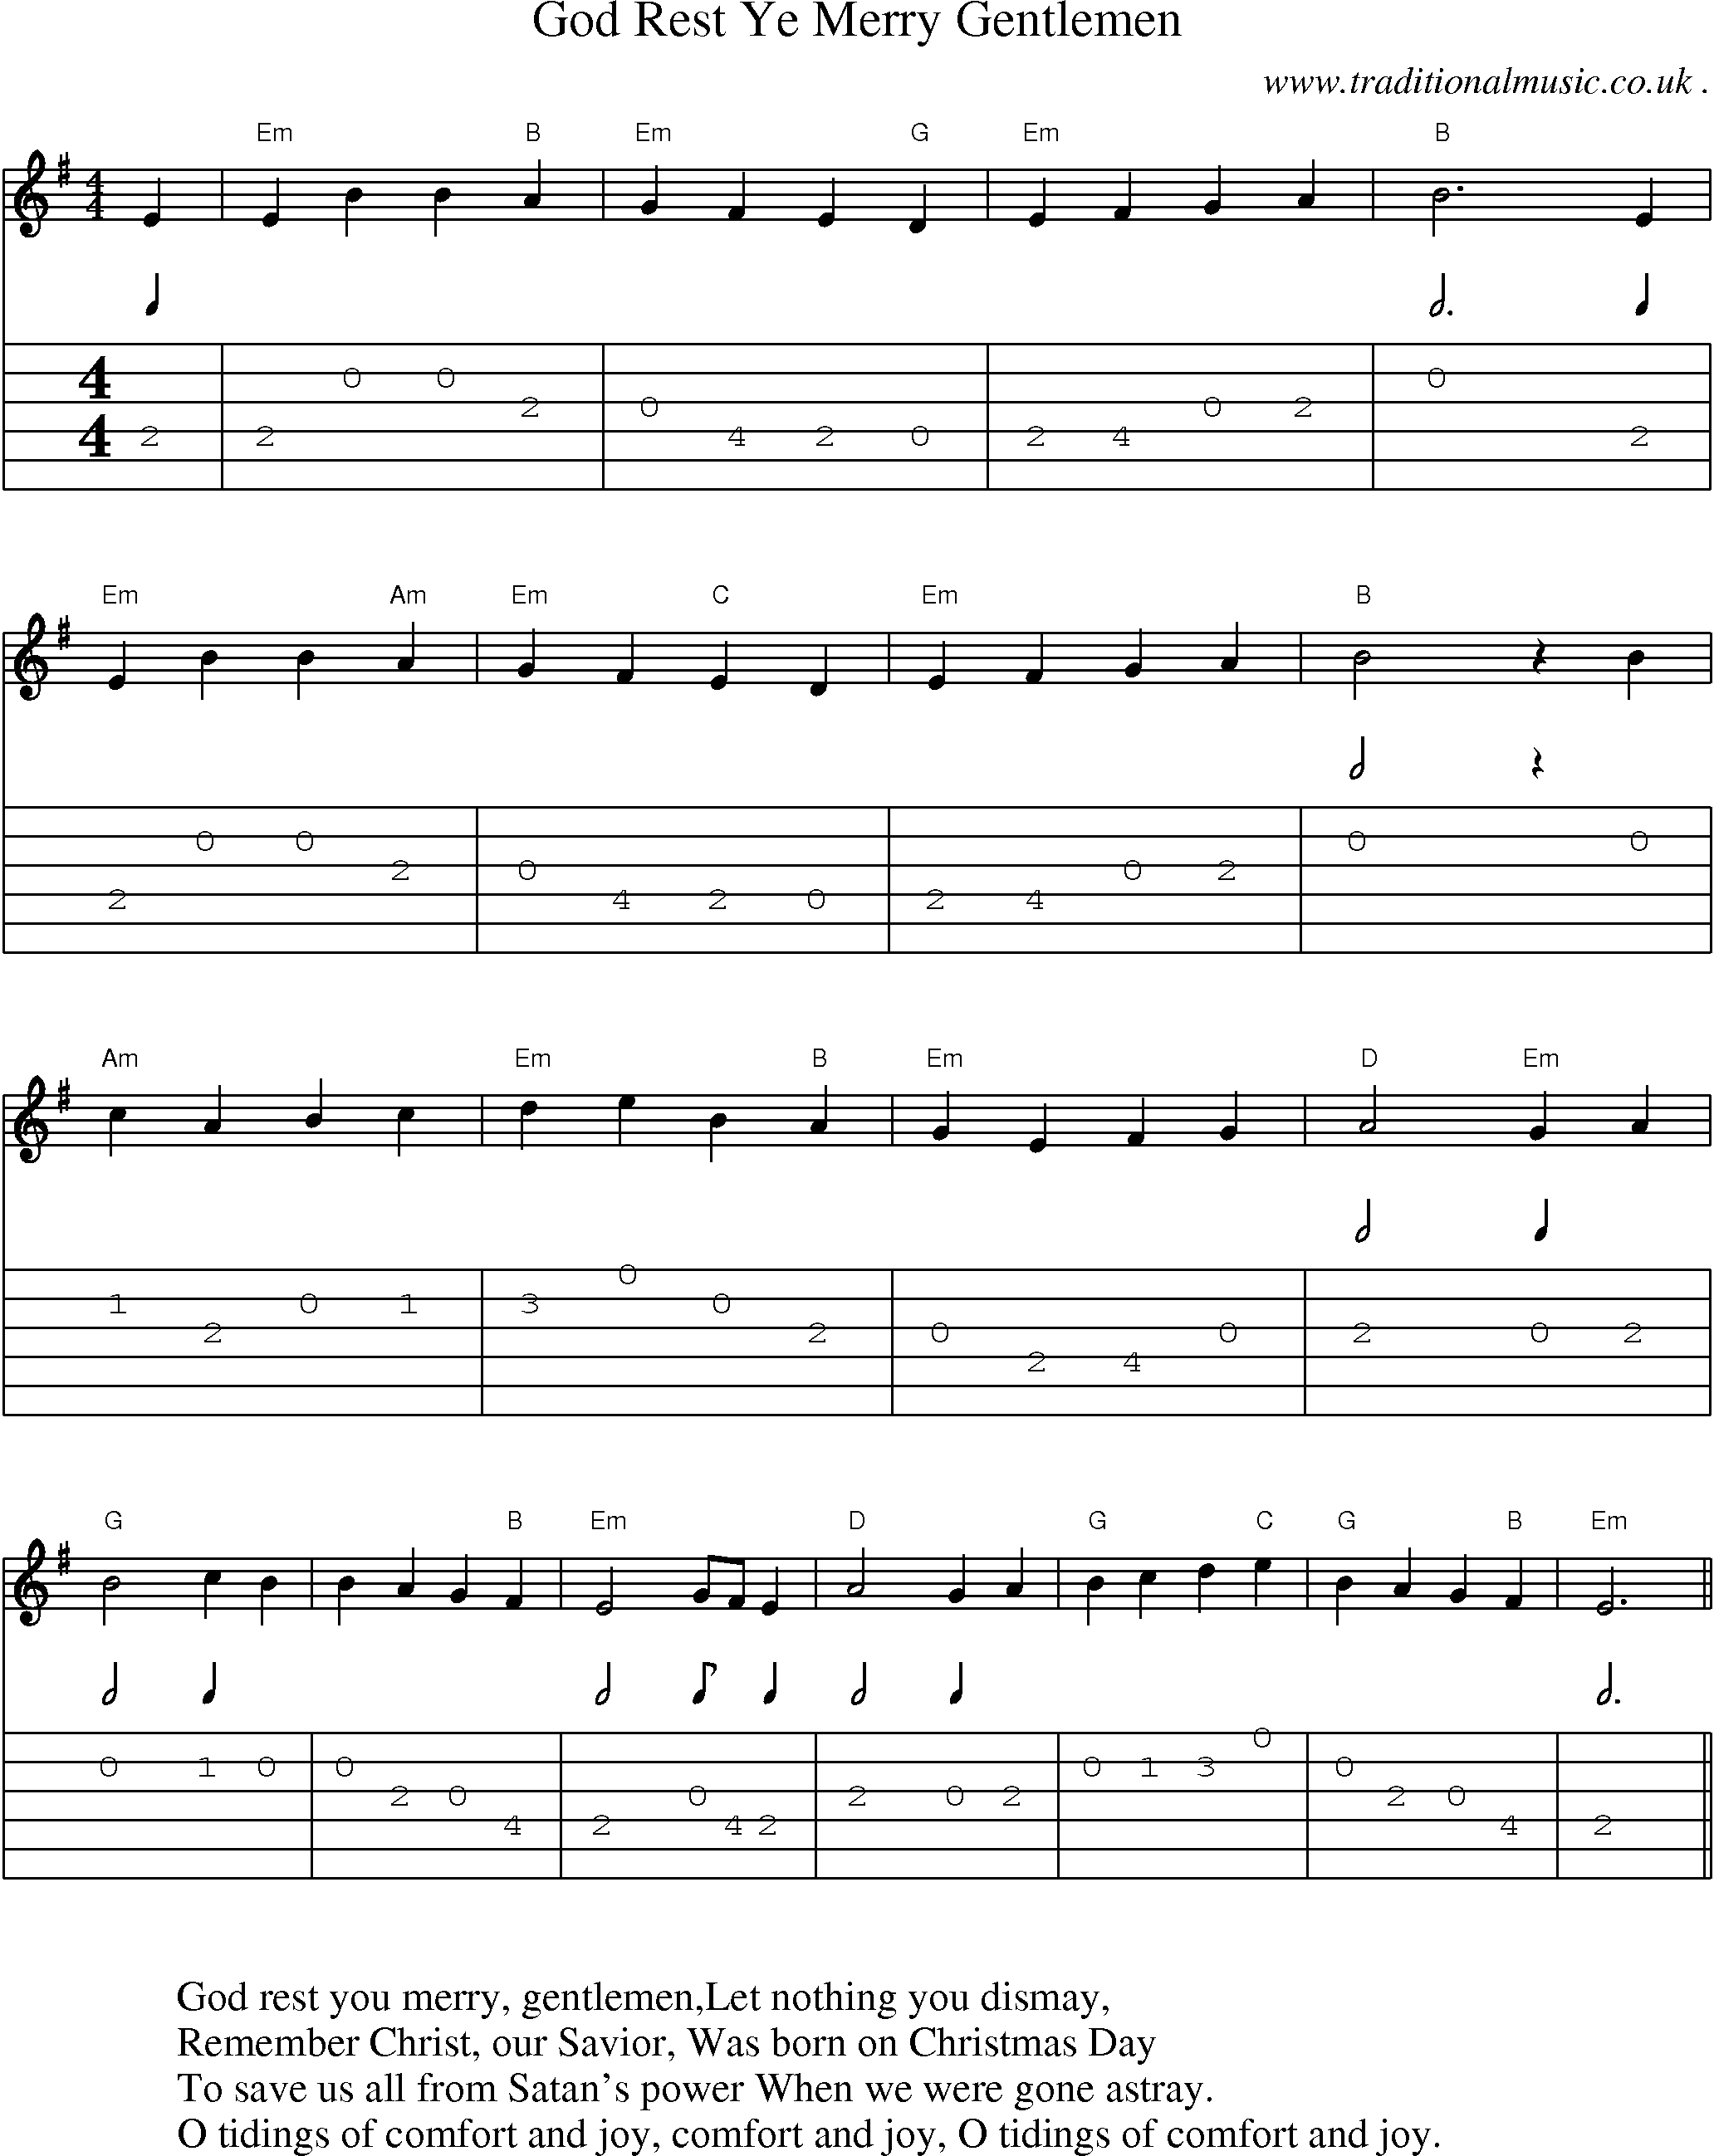 music score and guitar tabs for god rest ye merry gentlemen sheet music in 2019 guitar songs. Black Bedroom Furniture Sets. Home Design Ideas